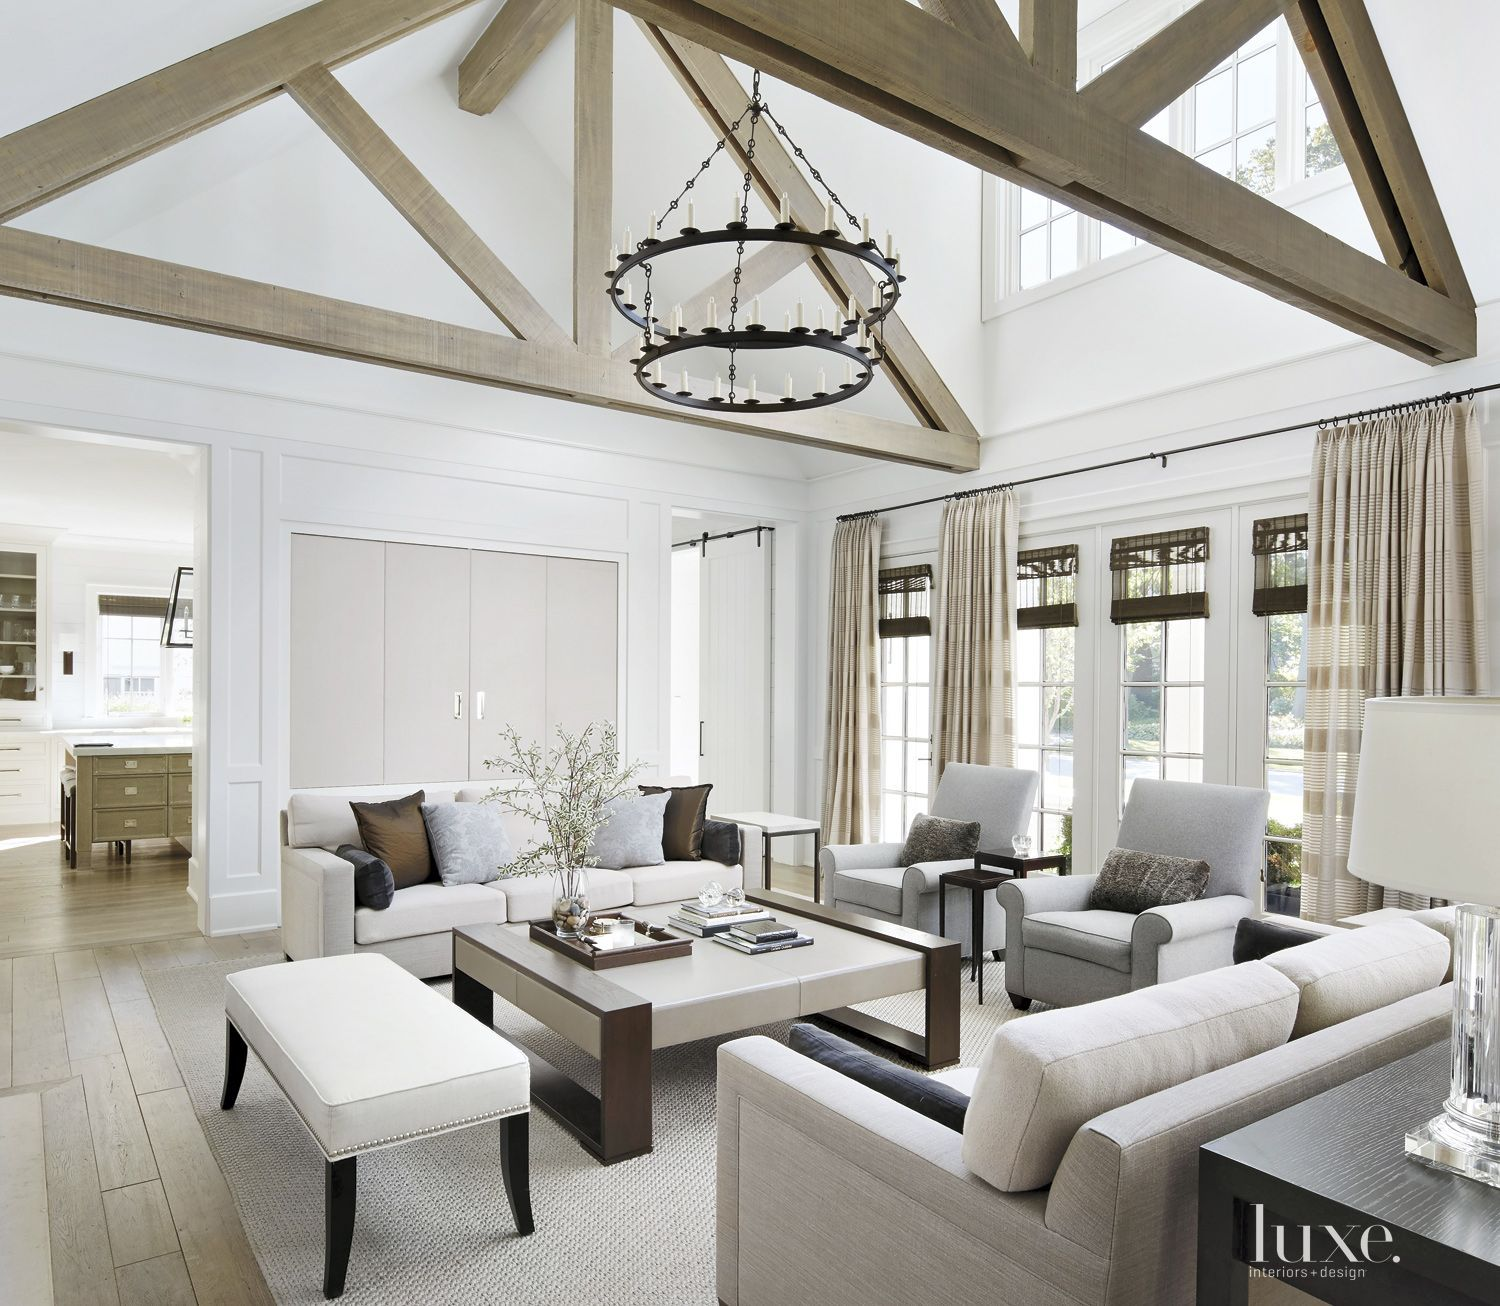 2013 Neutral Living Room Decorating Ideas From Bhg: Transitional Hinsdale Abode With Neutral Interior Palette